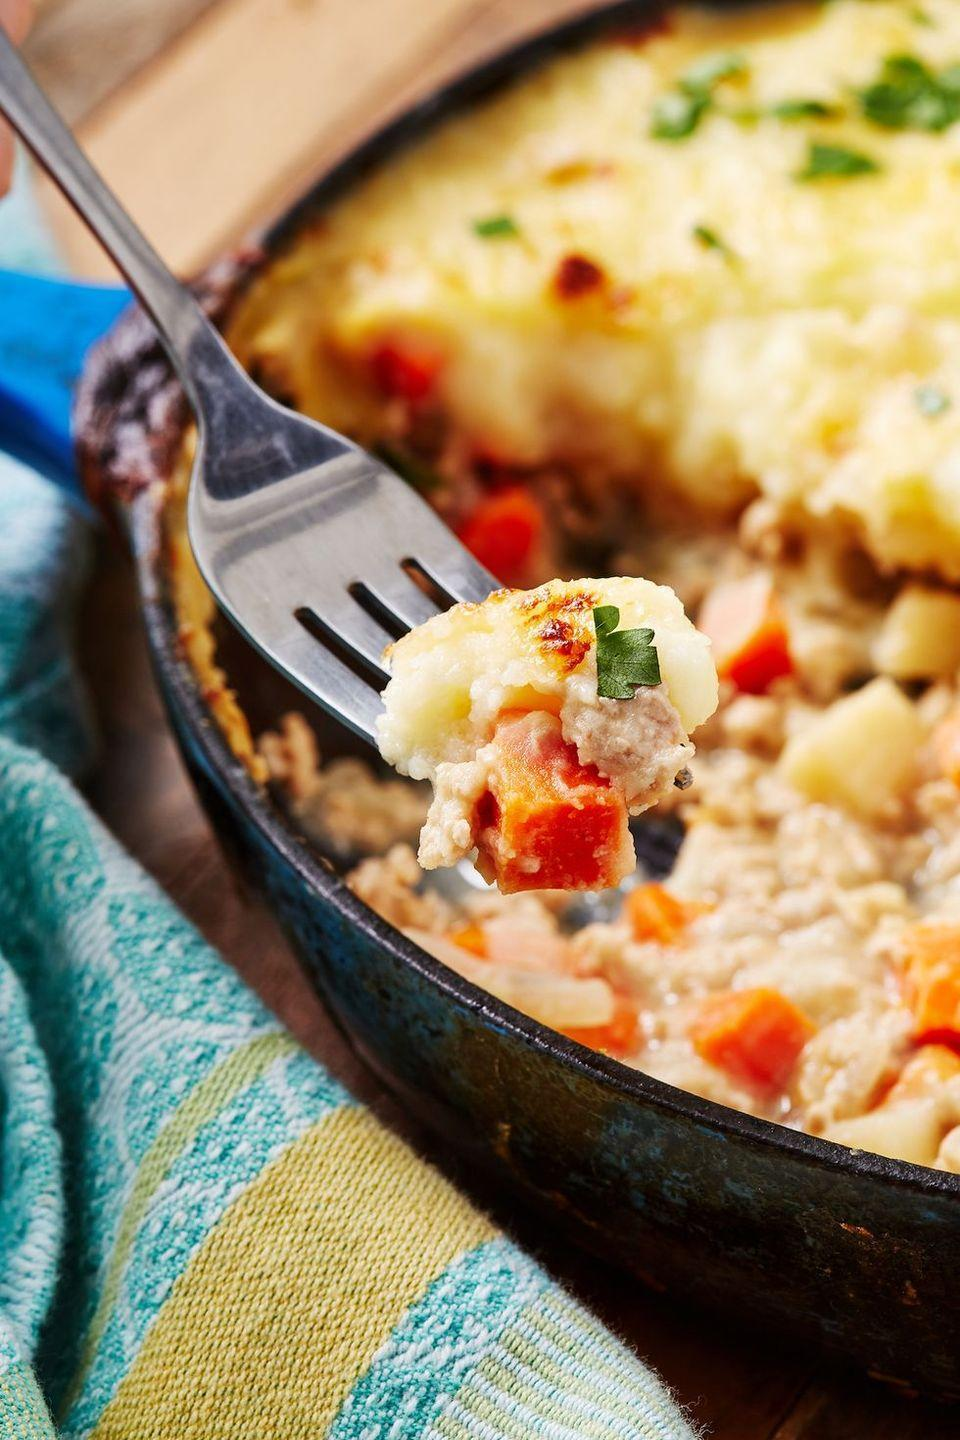 """<p>When the weather outside is frightful, nothing satisfies our craving for comfort food quite like a good <a href=""""https://www.delish.com/uk/cooking/recipes/a30712615/cauli-shepherds-pie-recipe/"""" rel=""""nofollow noopener"""" target=""""_blank"""" data-ylk=""""slk:shepherd's pie"""" class=""""link rapid-noclick-resp"""">shepherd's pie</a>. This turkey version is surprisingly light and SO easy to make. If you'd like to bulk it up with more veggies, frozen corn and/or frozen peas are a great addition! </p><p>Get the <a href=""""https://www.delish.com/uk/cooking/recipes/a32360407/easy-turkey-shepherds-pie-recipe/"""" rel=""""nofollow noopener"""" target=""""_blank"""" data-ylk=""""slk:Turkey Shepherd's Pie"""" class=""""link rapid-noclick-resp"""">Turkey Shepherd's Pie</a> recipe.</p>"""